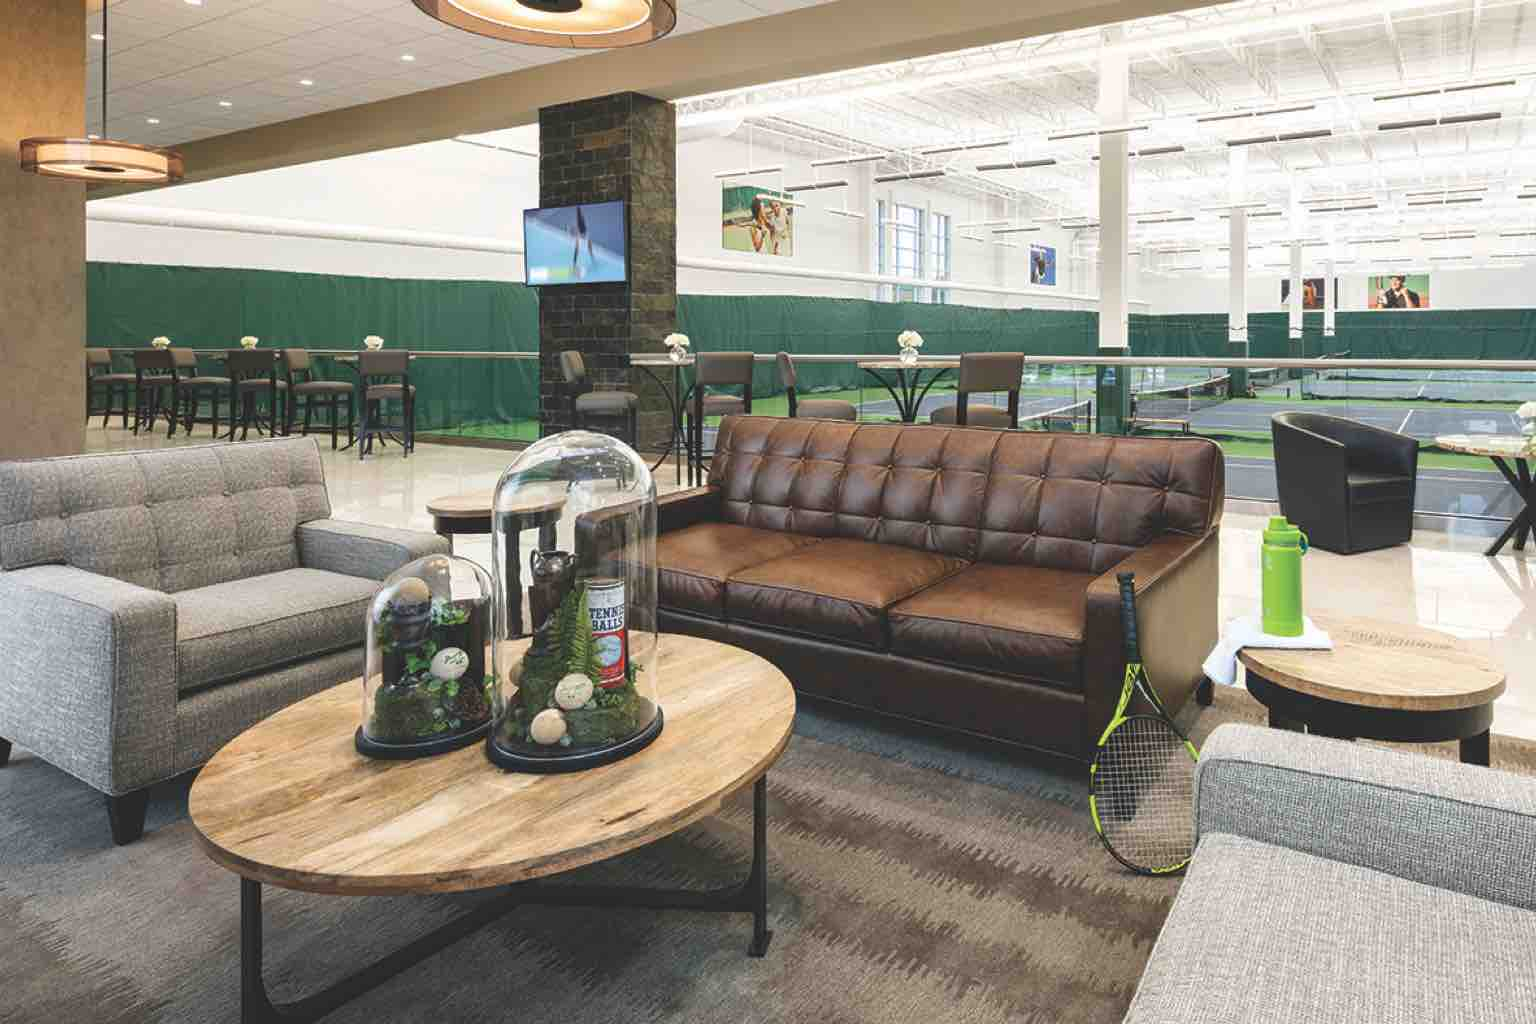 A comfortable lounge area with sofas, chairs and tables overlooking several indoor tennis courts